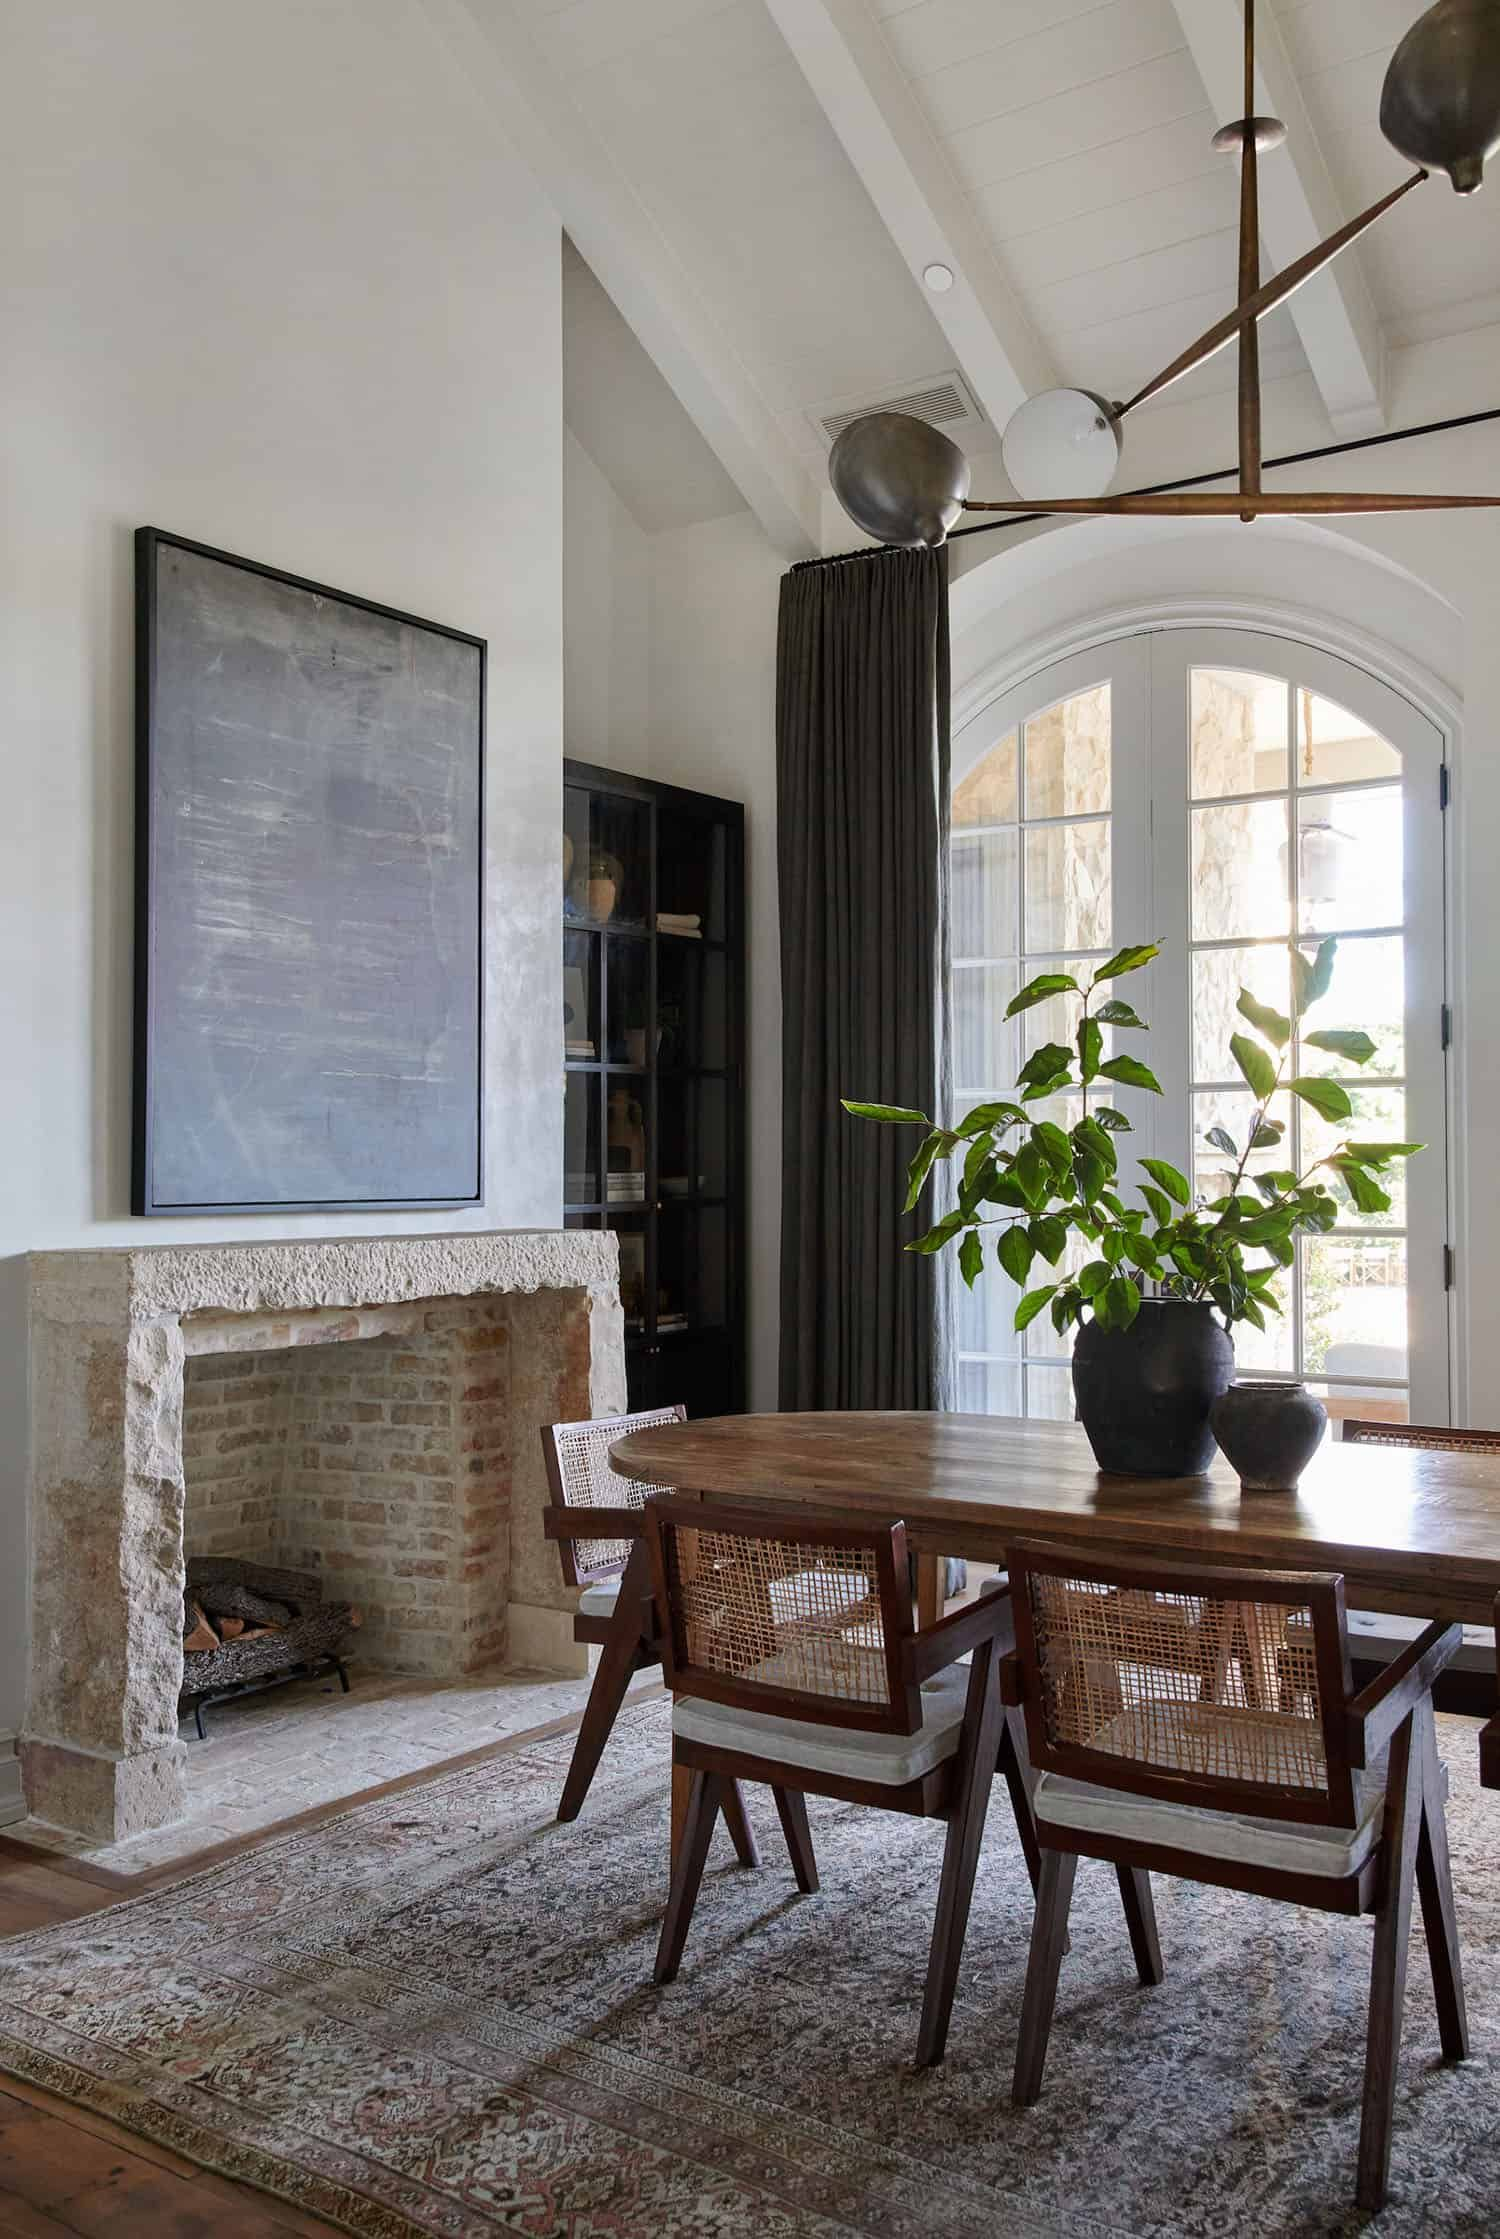 Drool Worthy Home With A Rustic Farmhouse Vibe In Southern California Dining Room Spaces Home Dining Room Design